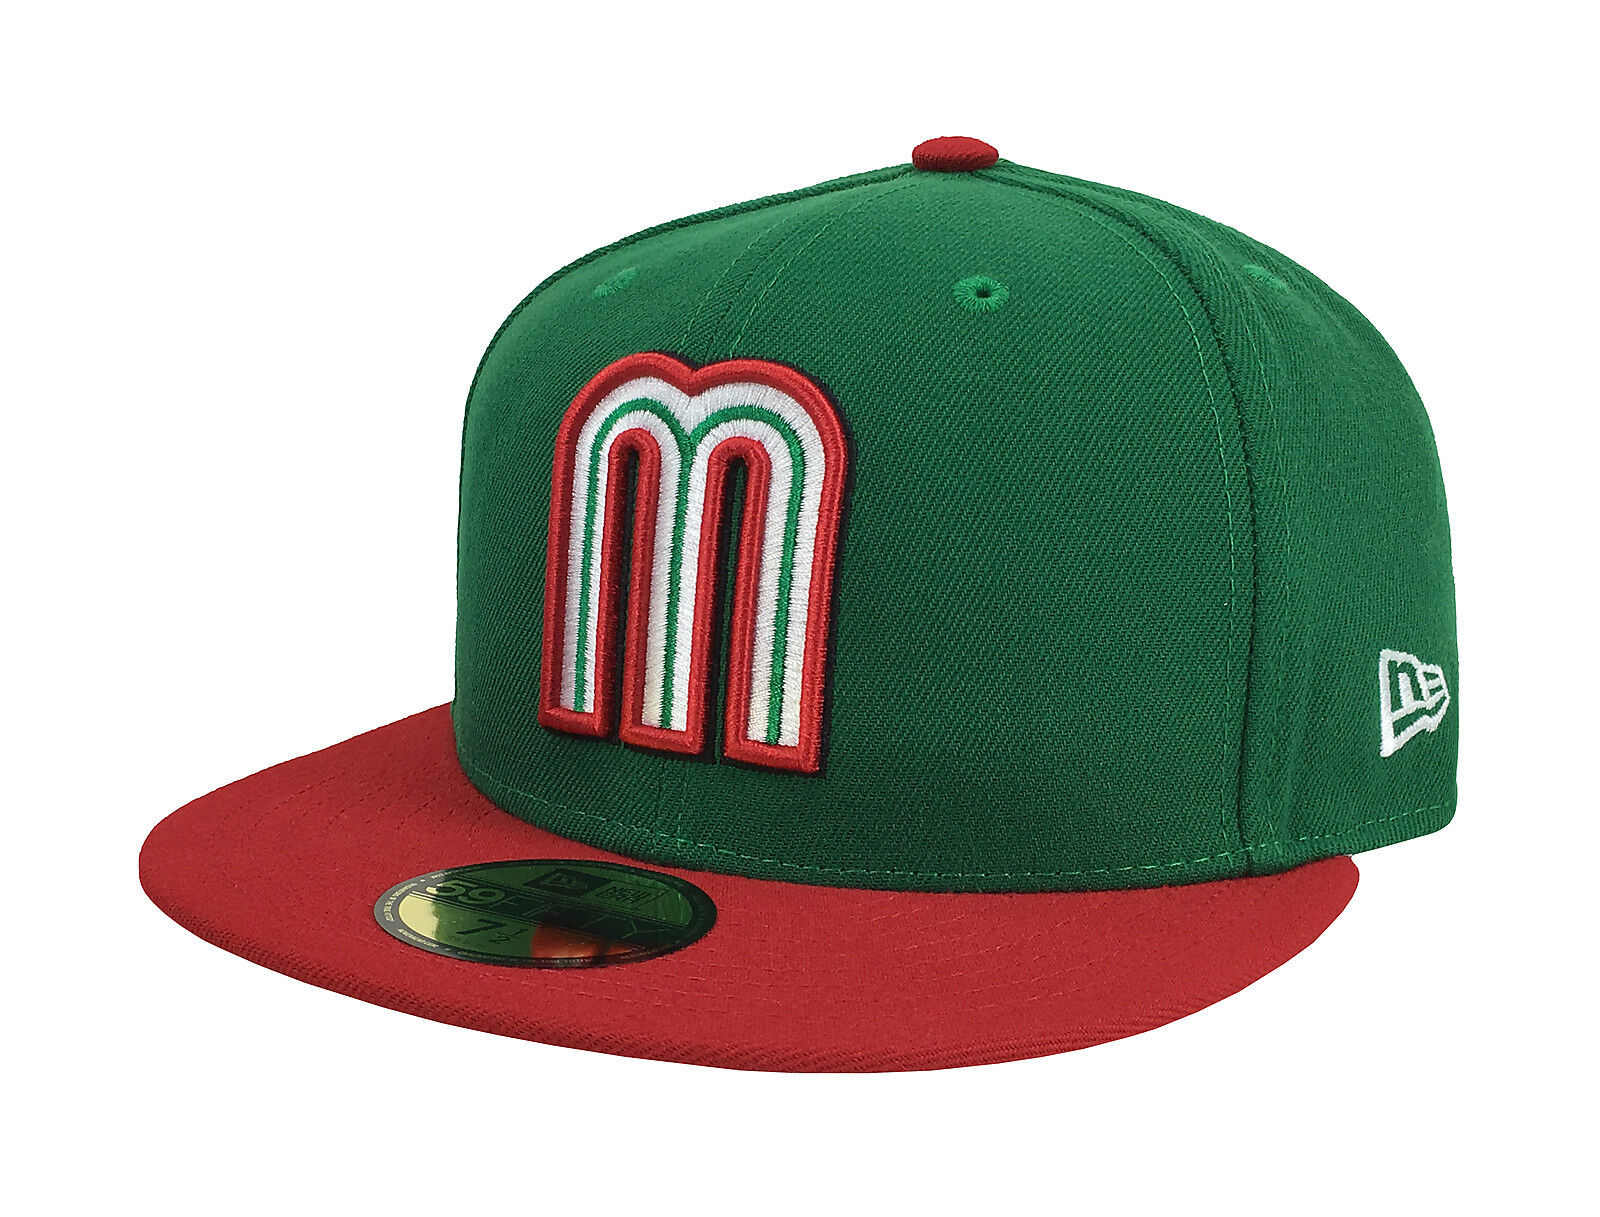 New Color Era 59Fifty WBC 2017 Cap Mexico Official Team Color New Fitted Hat - Green/Red 77707a